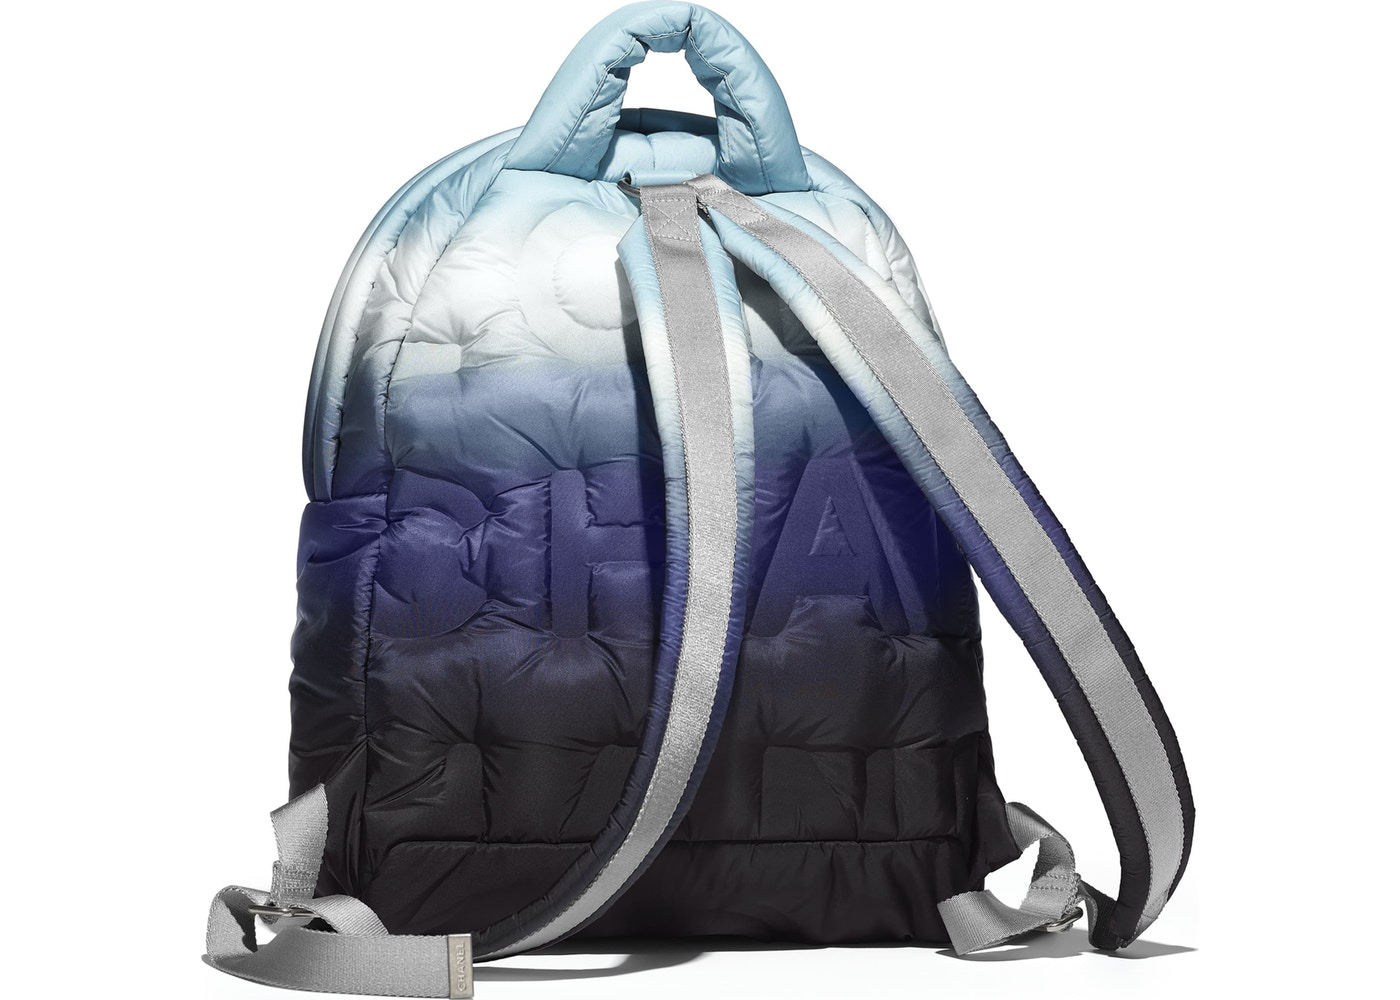 4b59df44a4a2 Chanel Doudoune Backpack Embossed Black/Blue/White